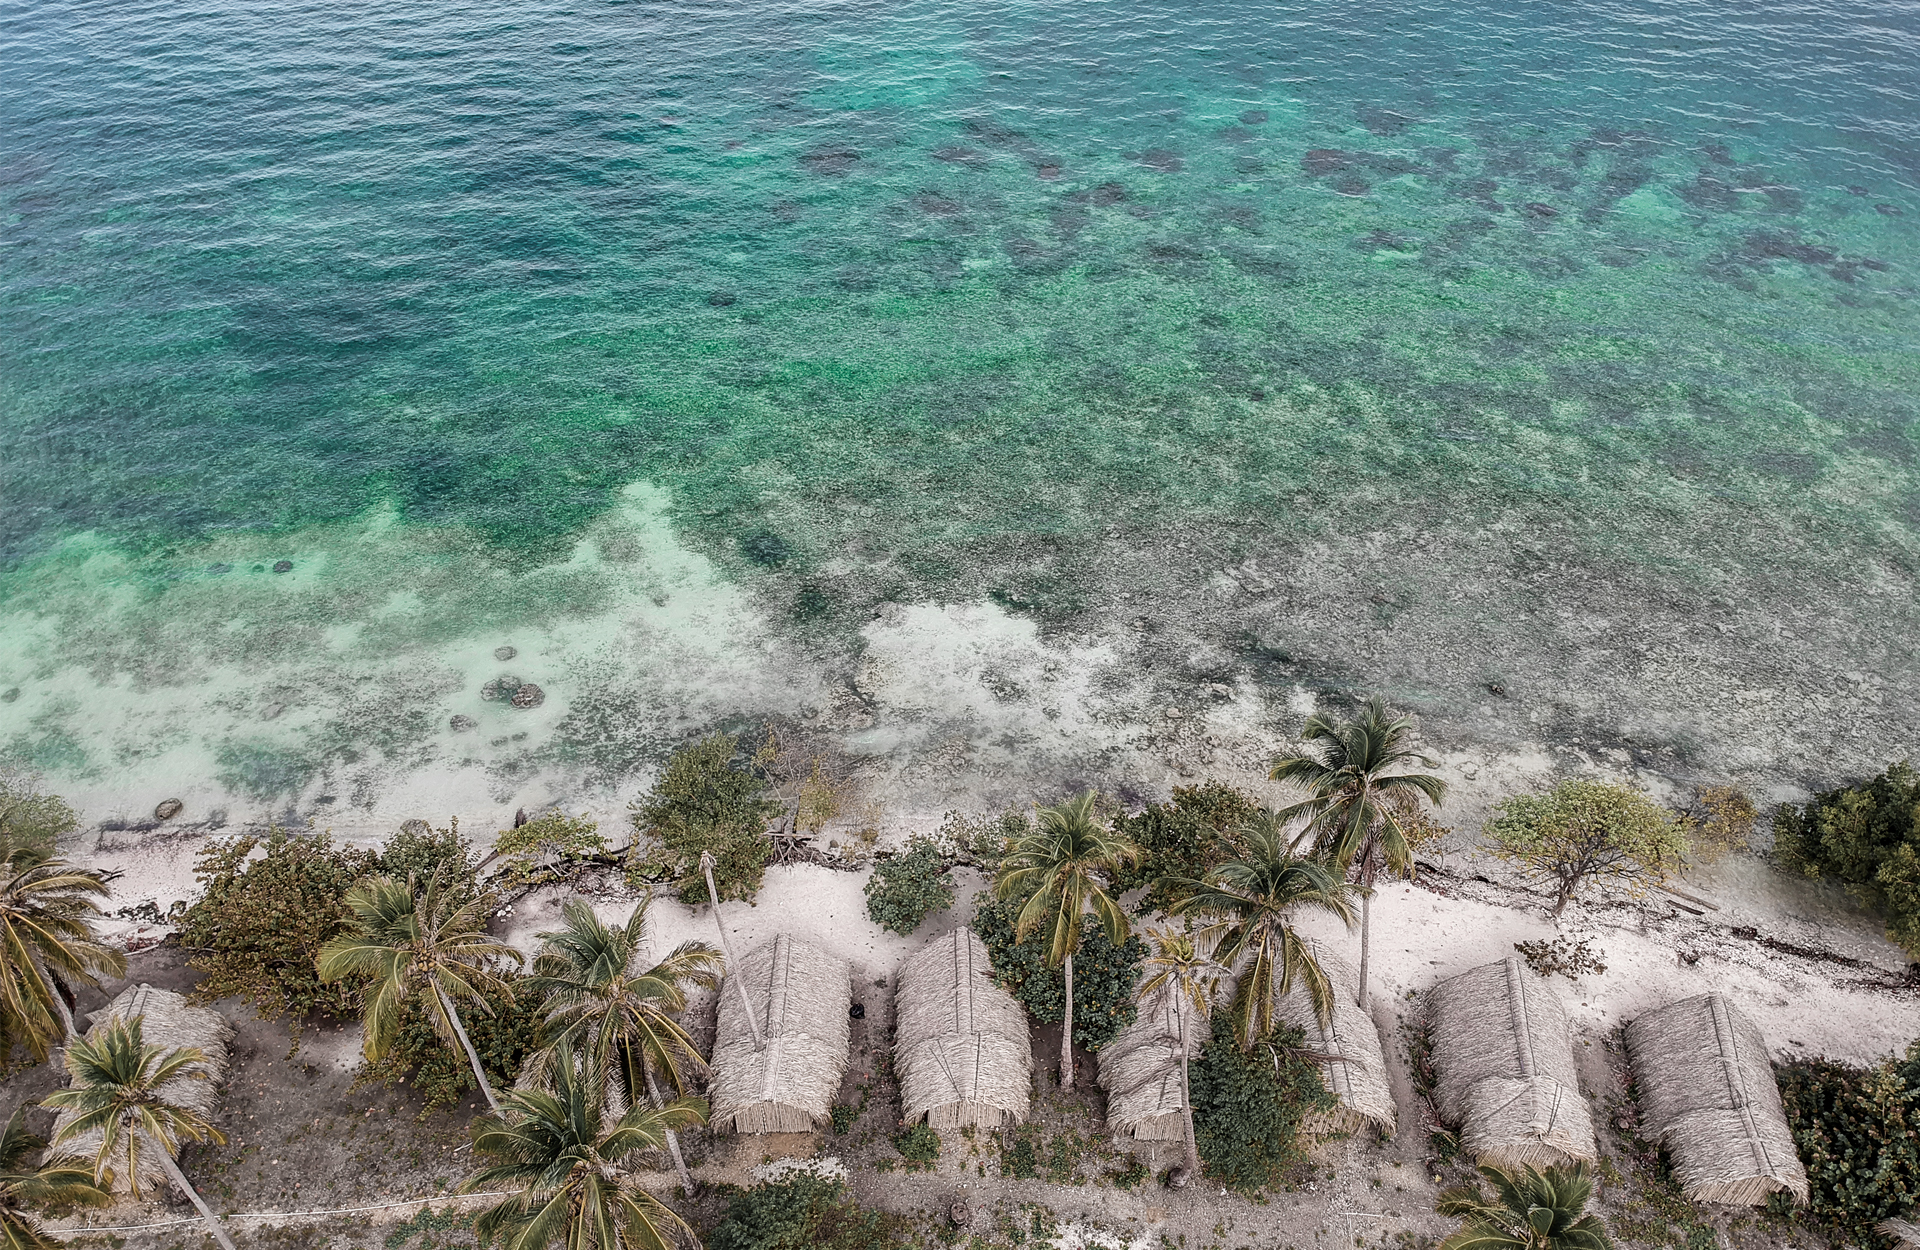 drone photo line water palm trees huts